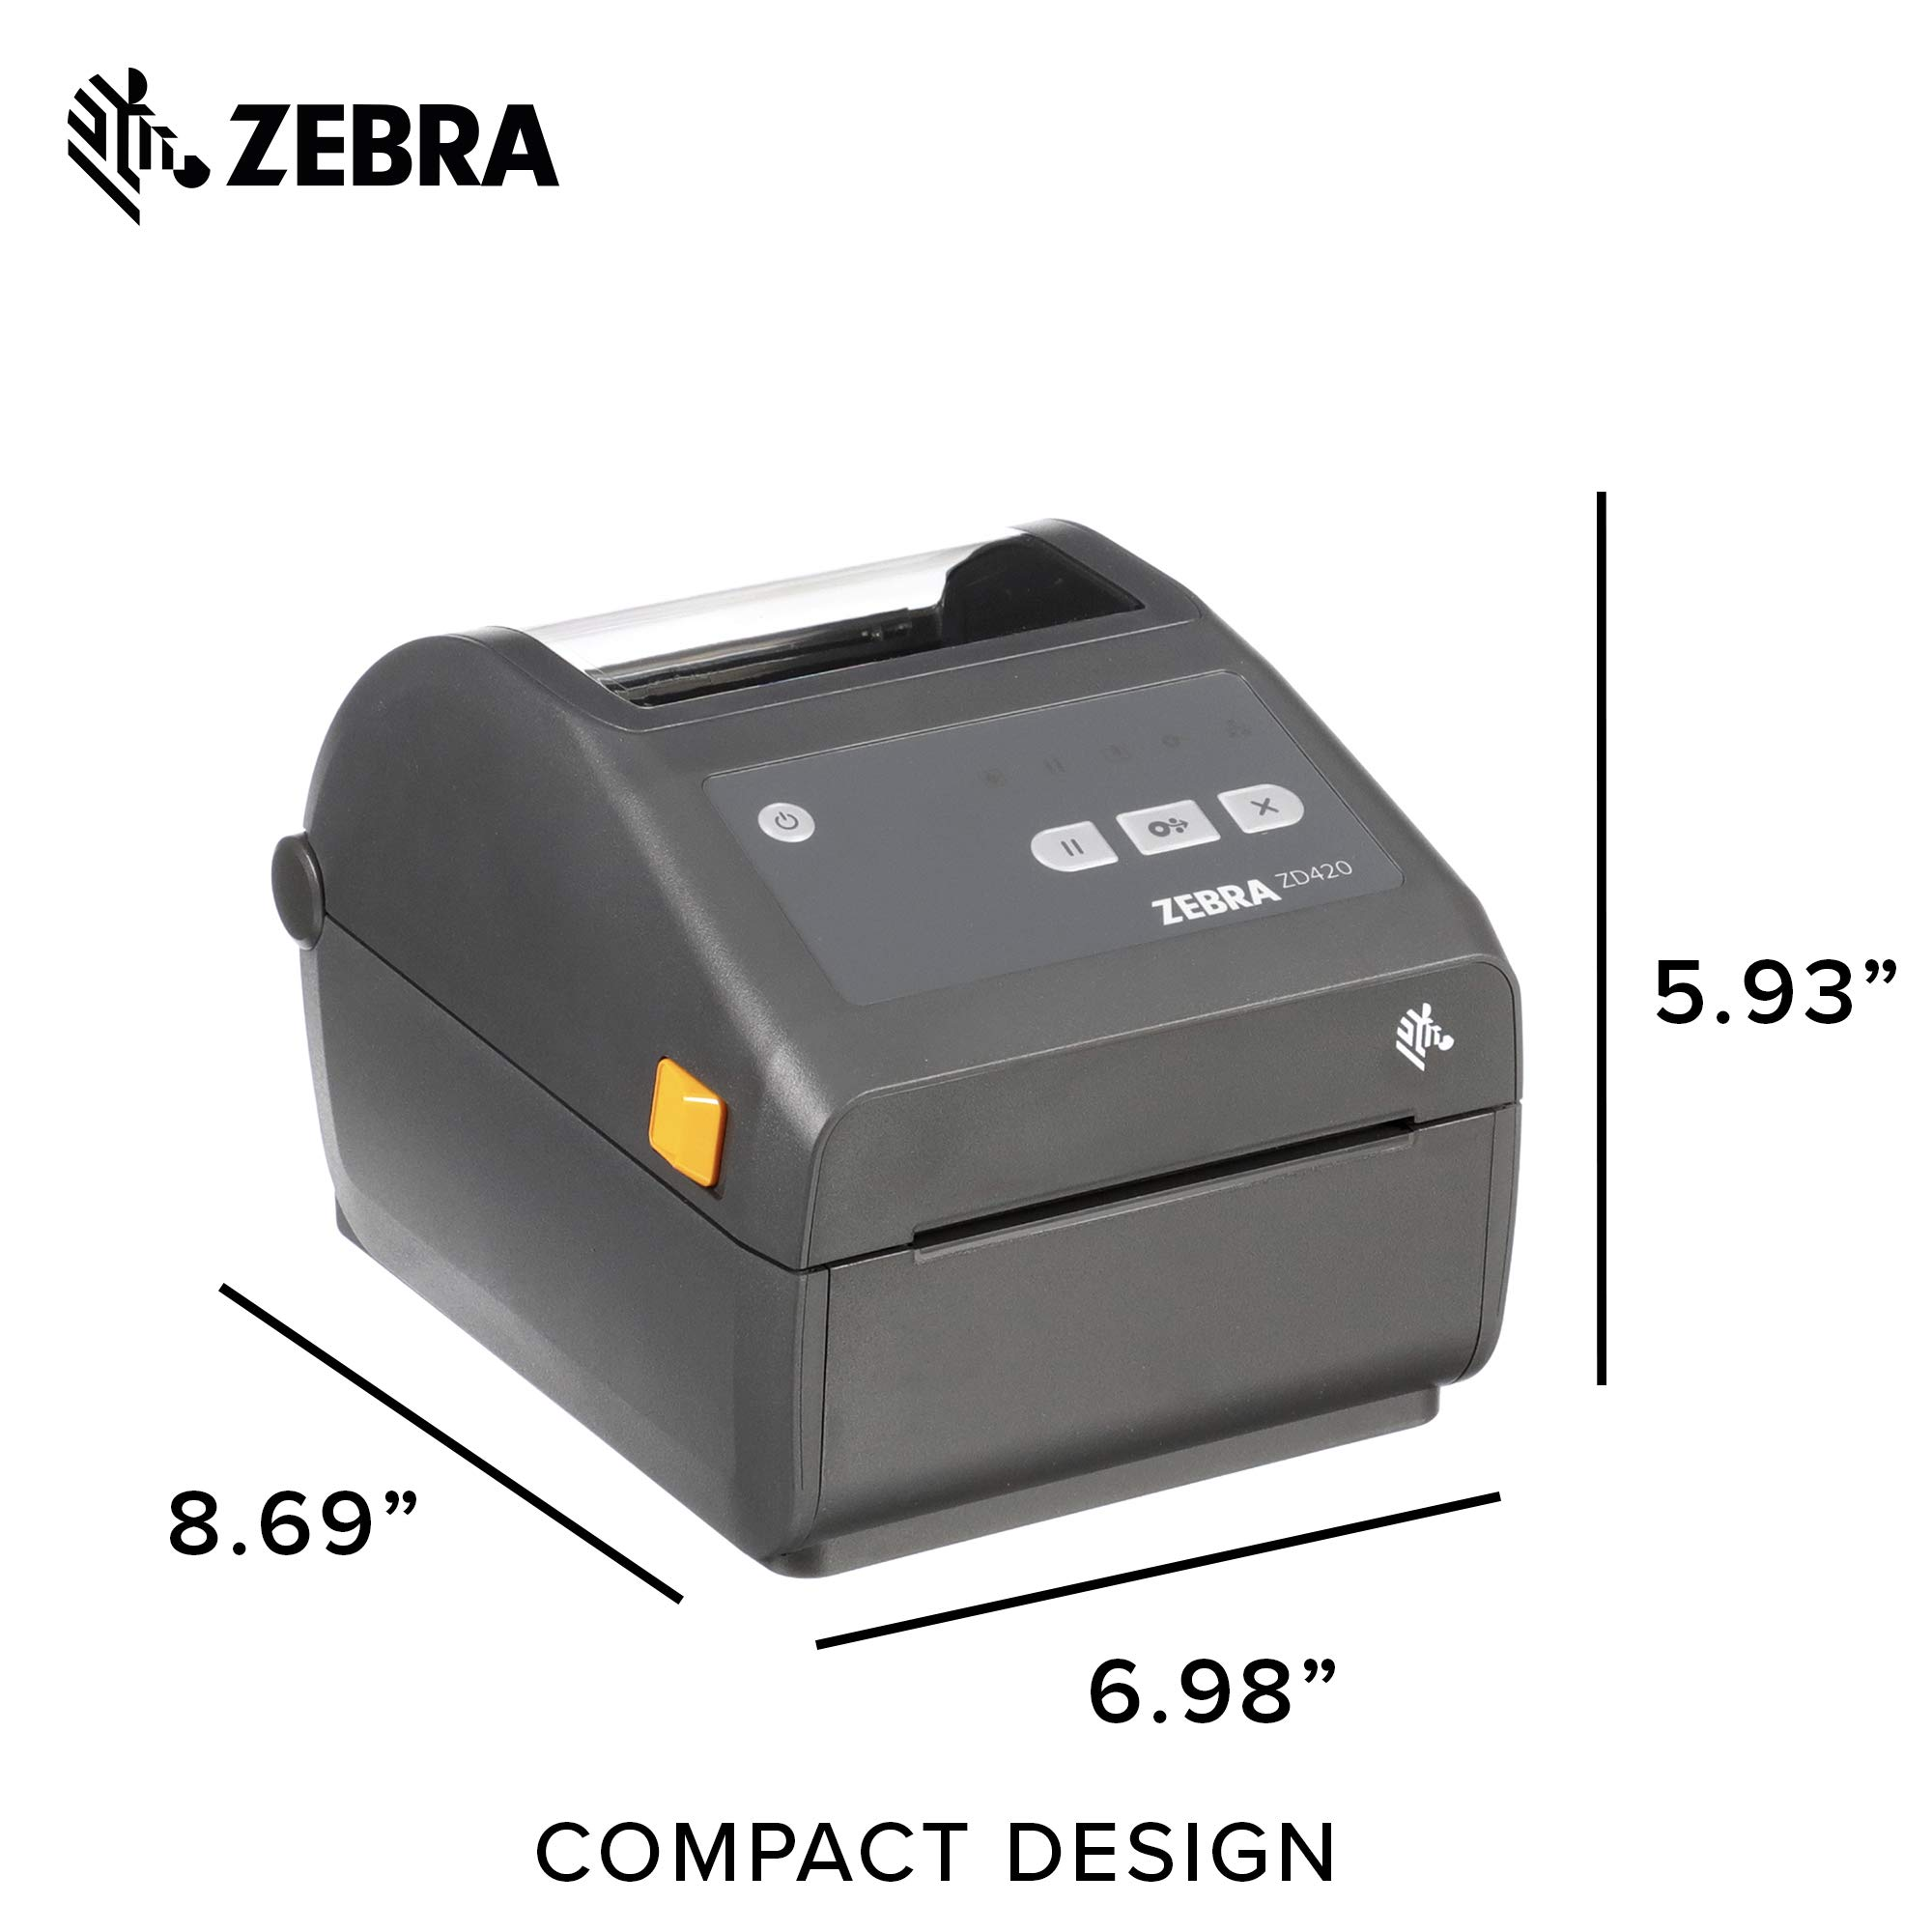 Zebra - ZD420d Direct Thermal Desktop Printer for Labels and Barcodes - Print Width 4 in - 300 dpi - Interface: USB - ZD42043-D01000EZ by Zebra Technologies (Image #6)